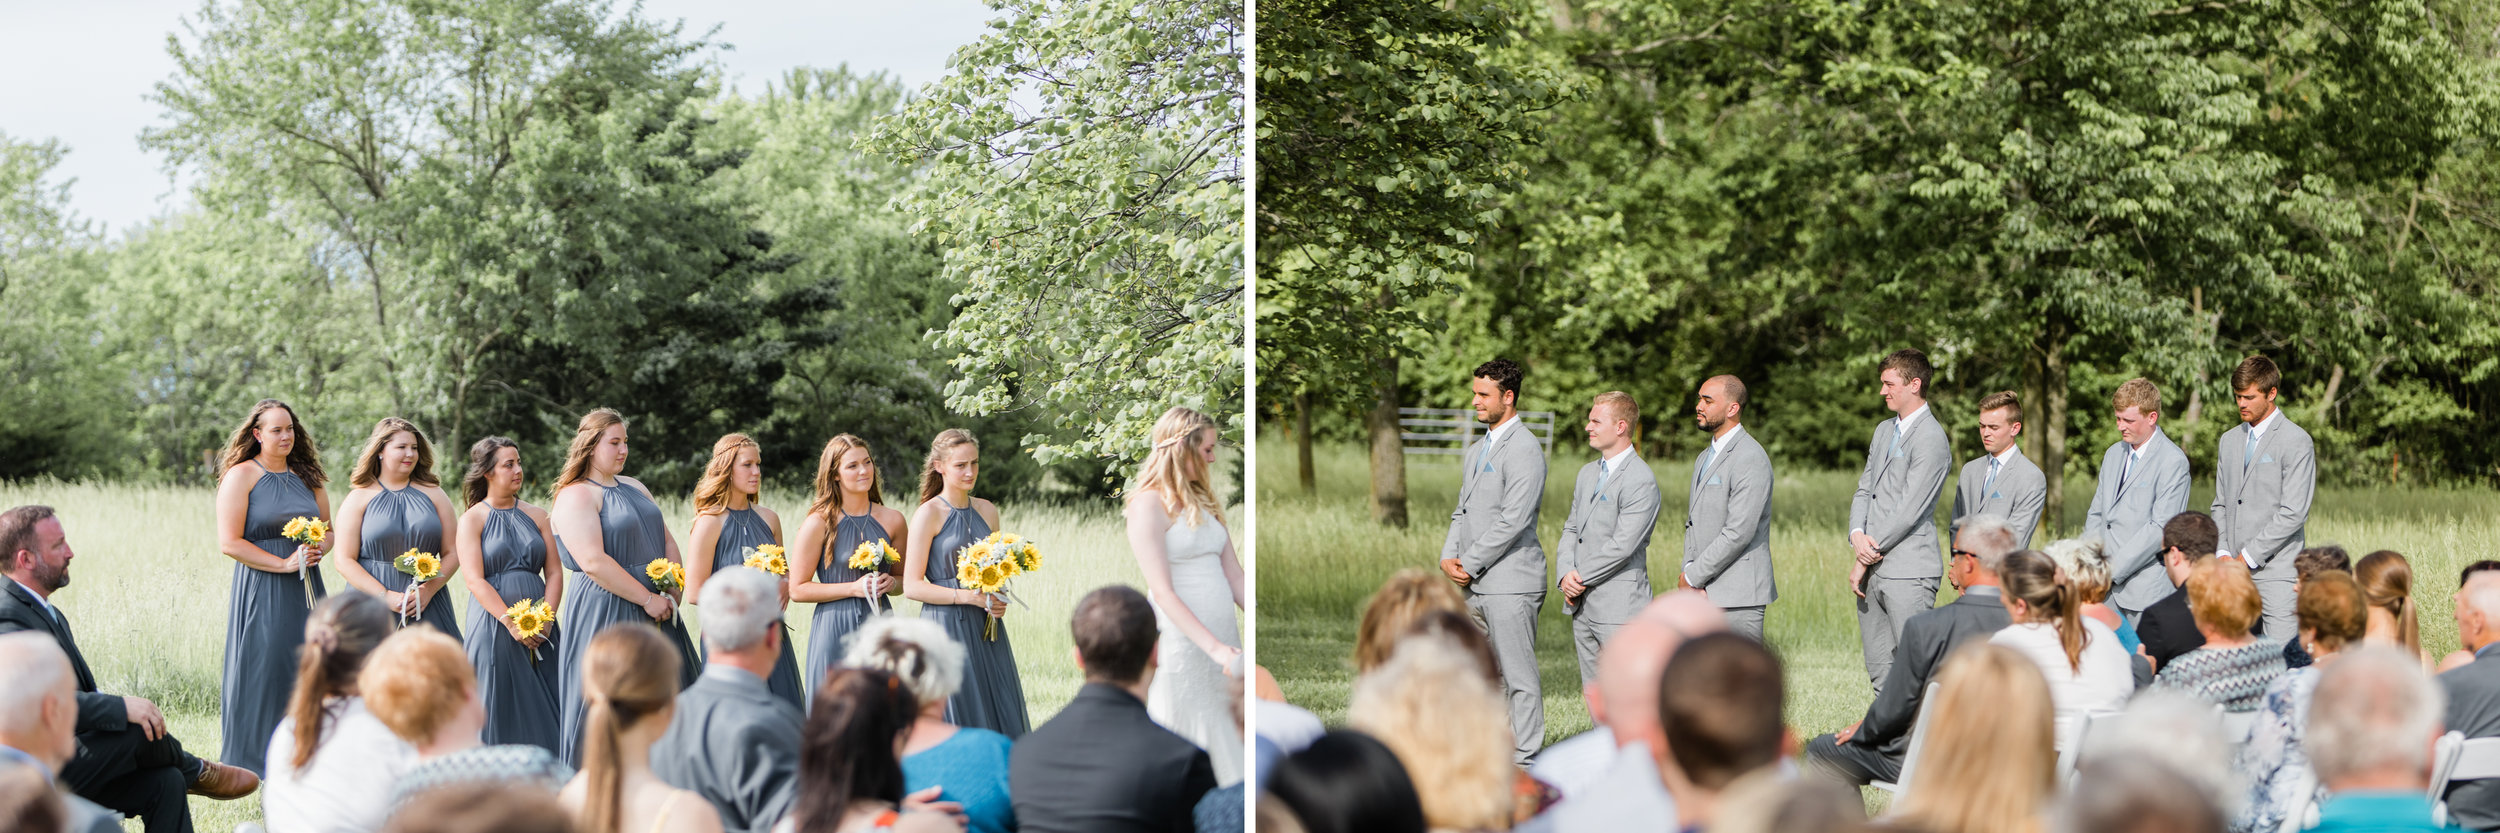 Kansas city wedding photographer 27.jpg